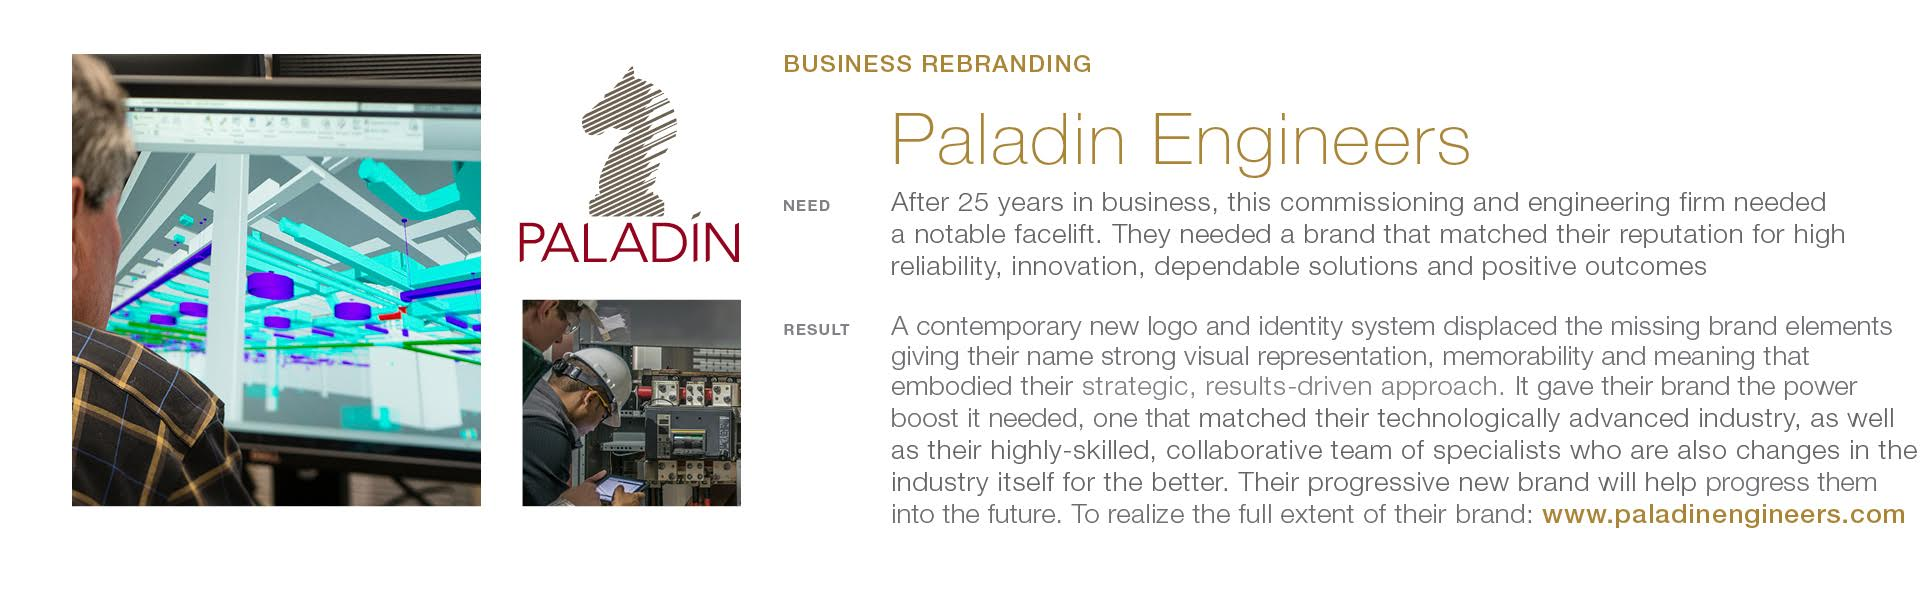 paladin-engineers-branding